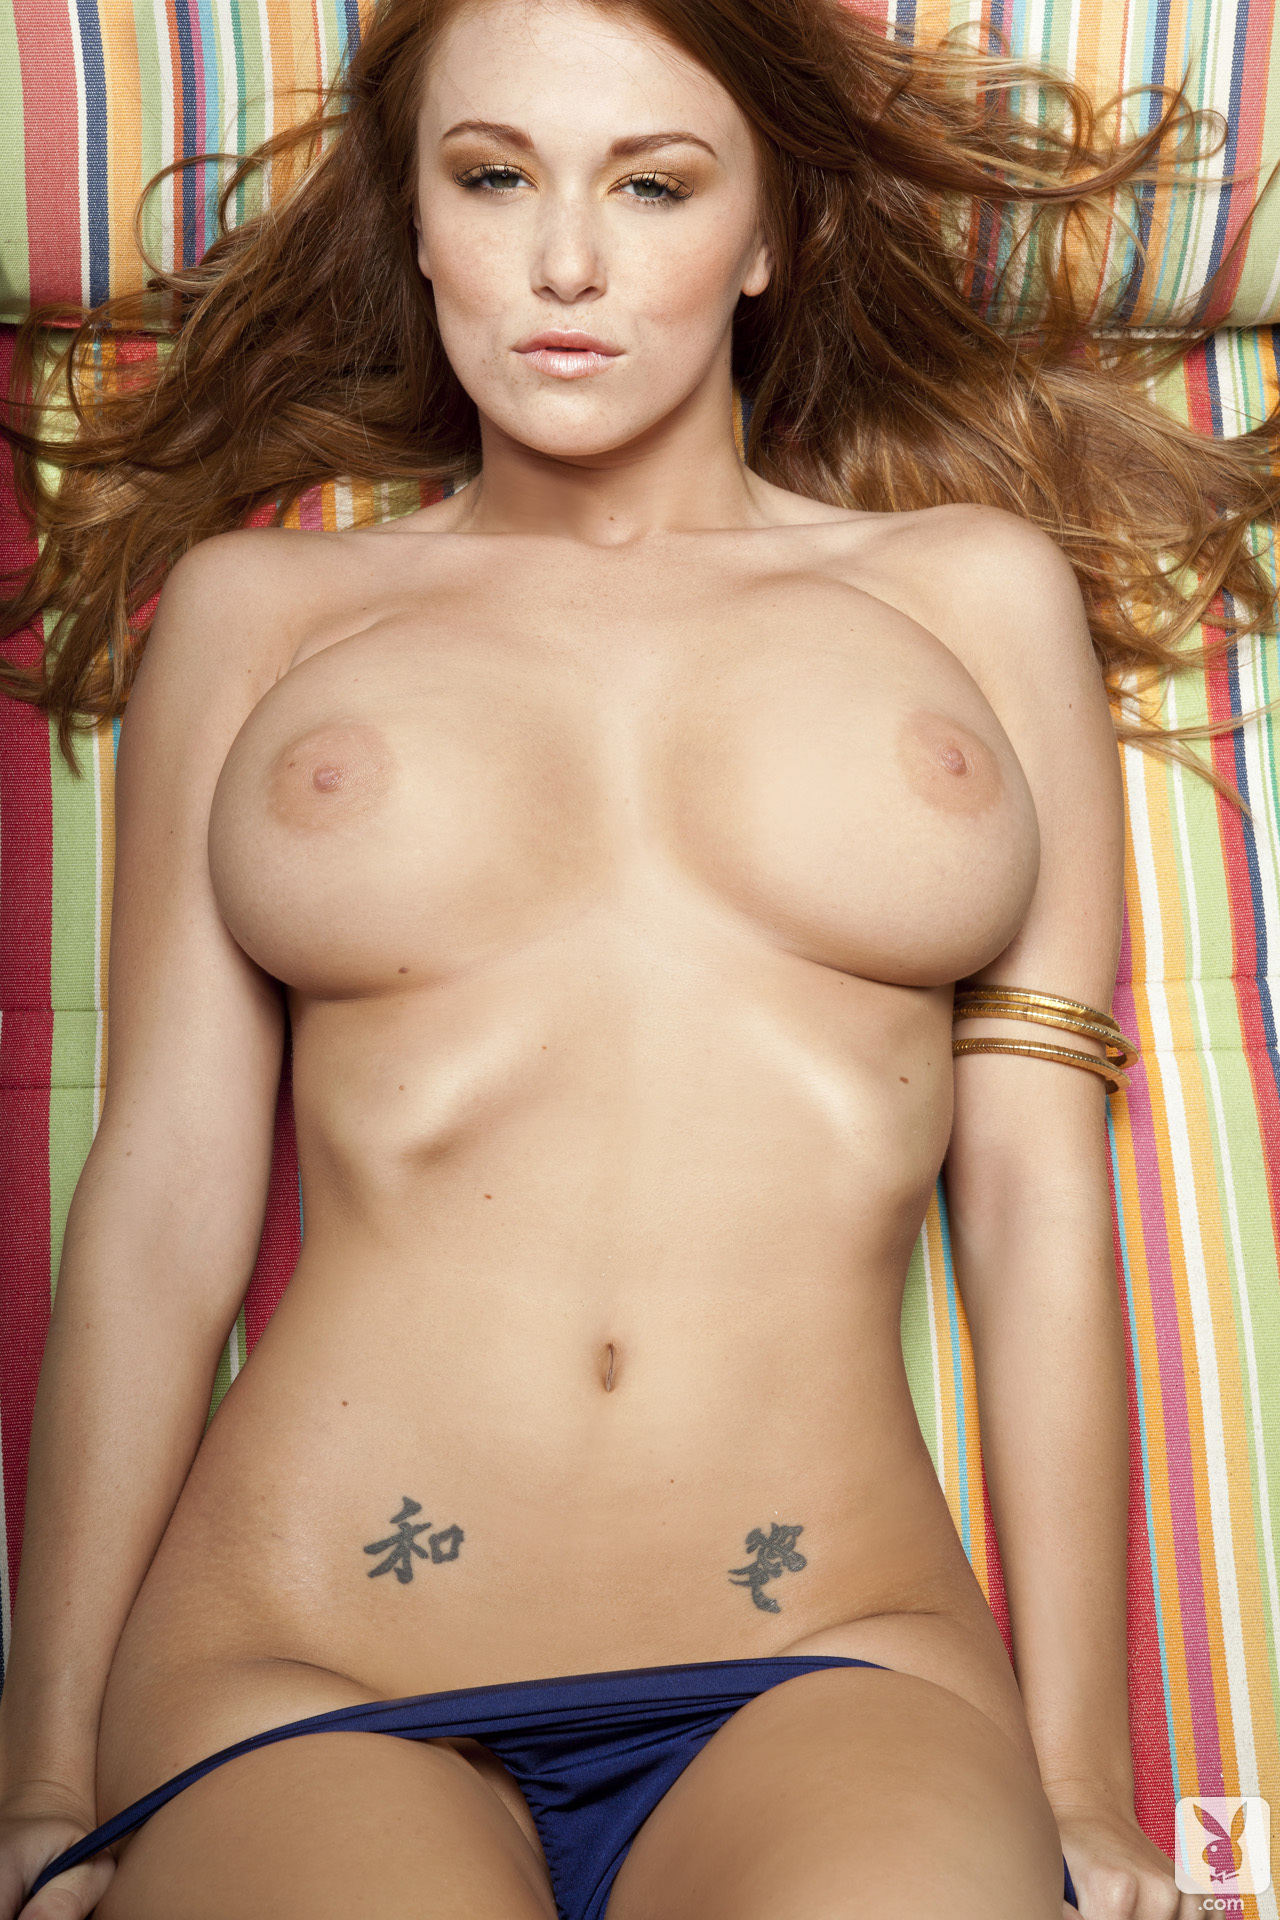 leanna-decker-bikini-boobs-redhead-seaside-playboy-12